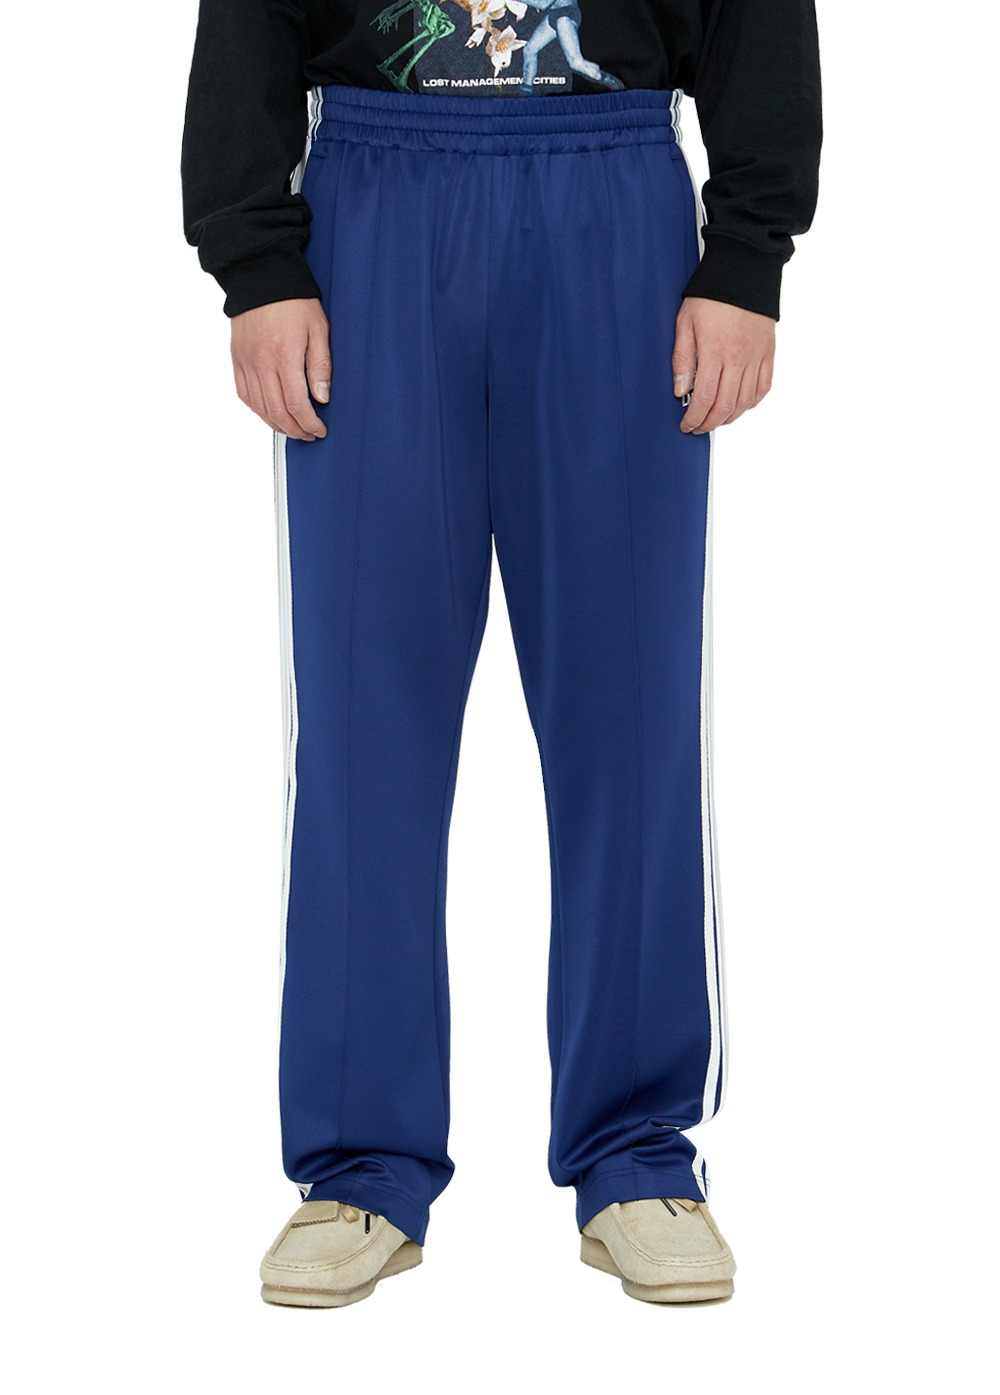 LMC SIDE STRIPED JERSEY PANTS navy